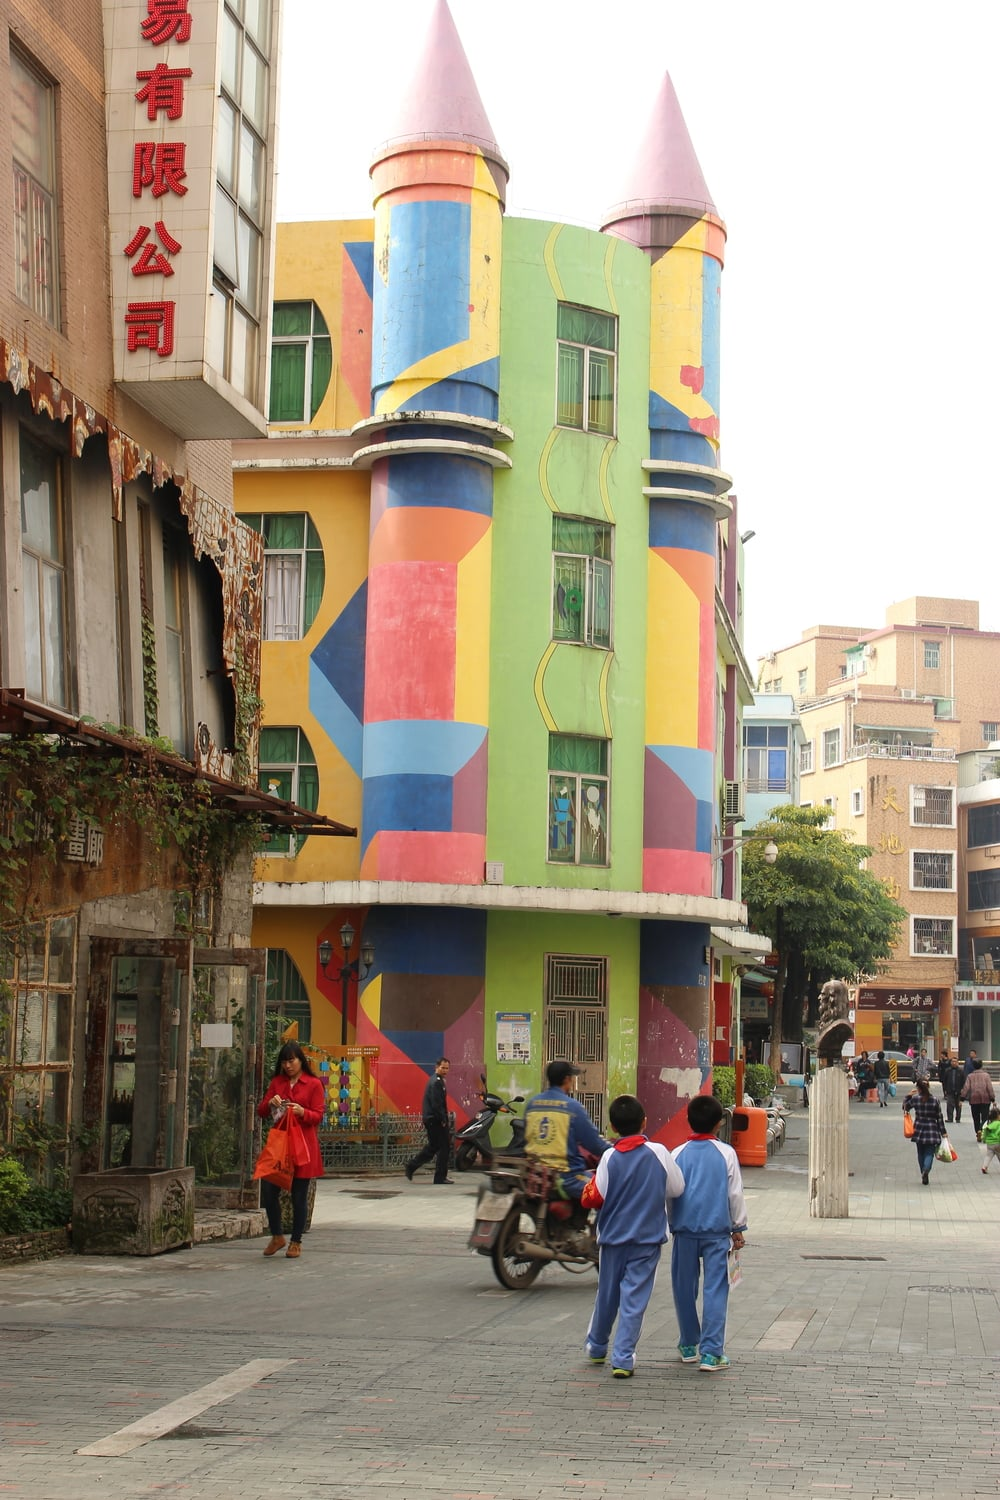 We were told that this colorful castle is a kindergarten!